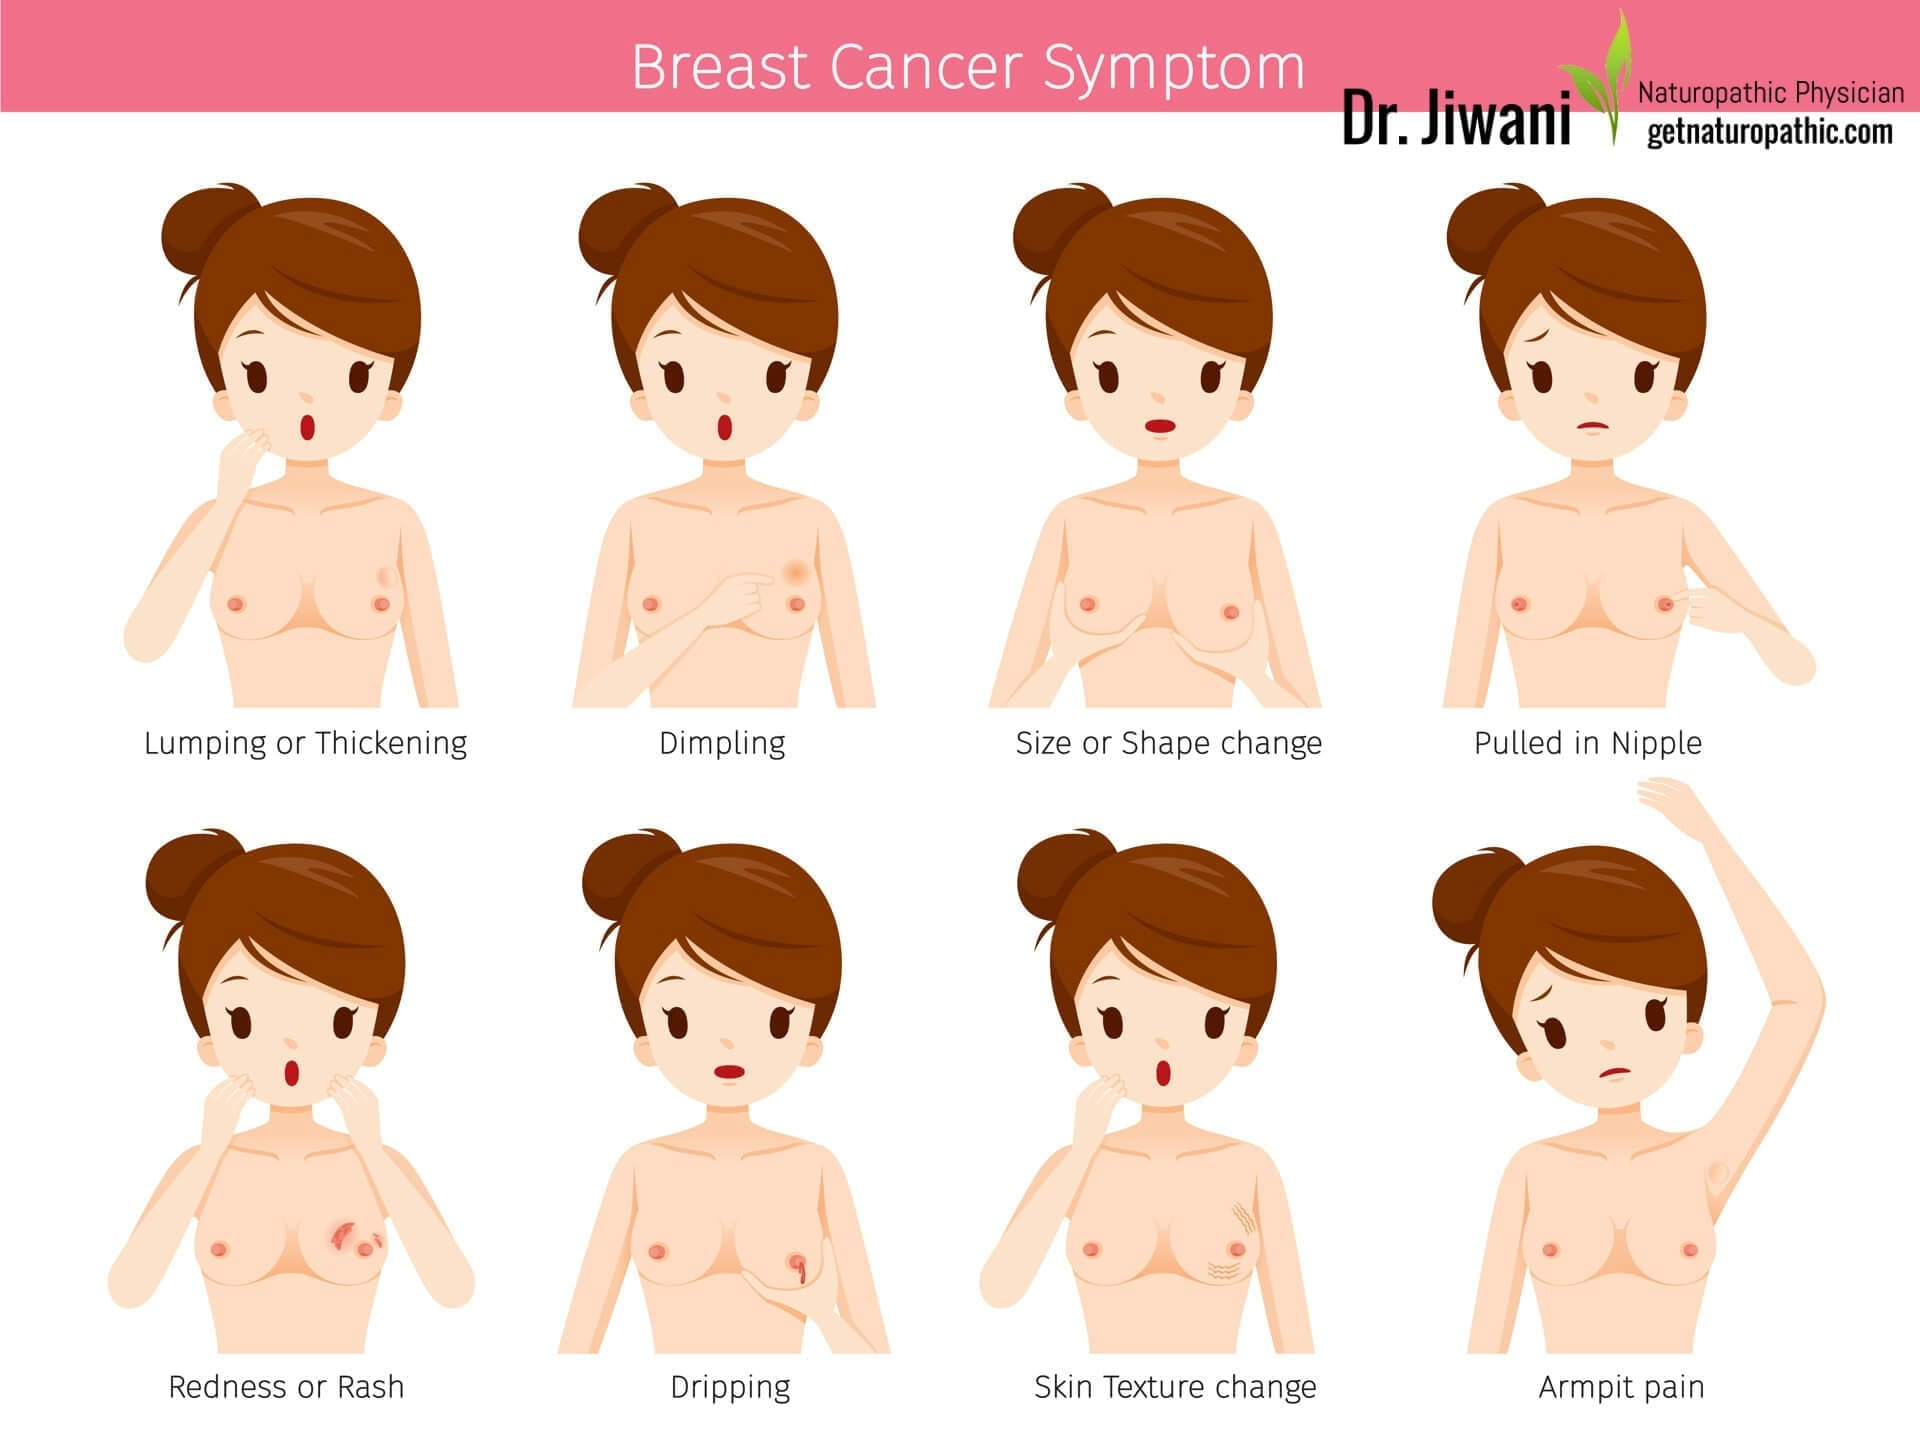 Breast Self-Exam: Healthy Breast Care includes Monthly Self Checks for Breast Cancer Detection | Dr. Jiwani's Naturopathic Nuggets Blog